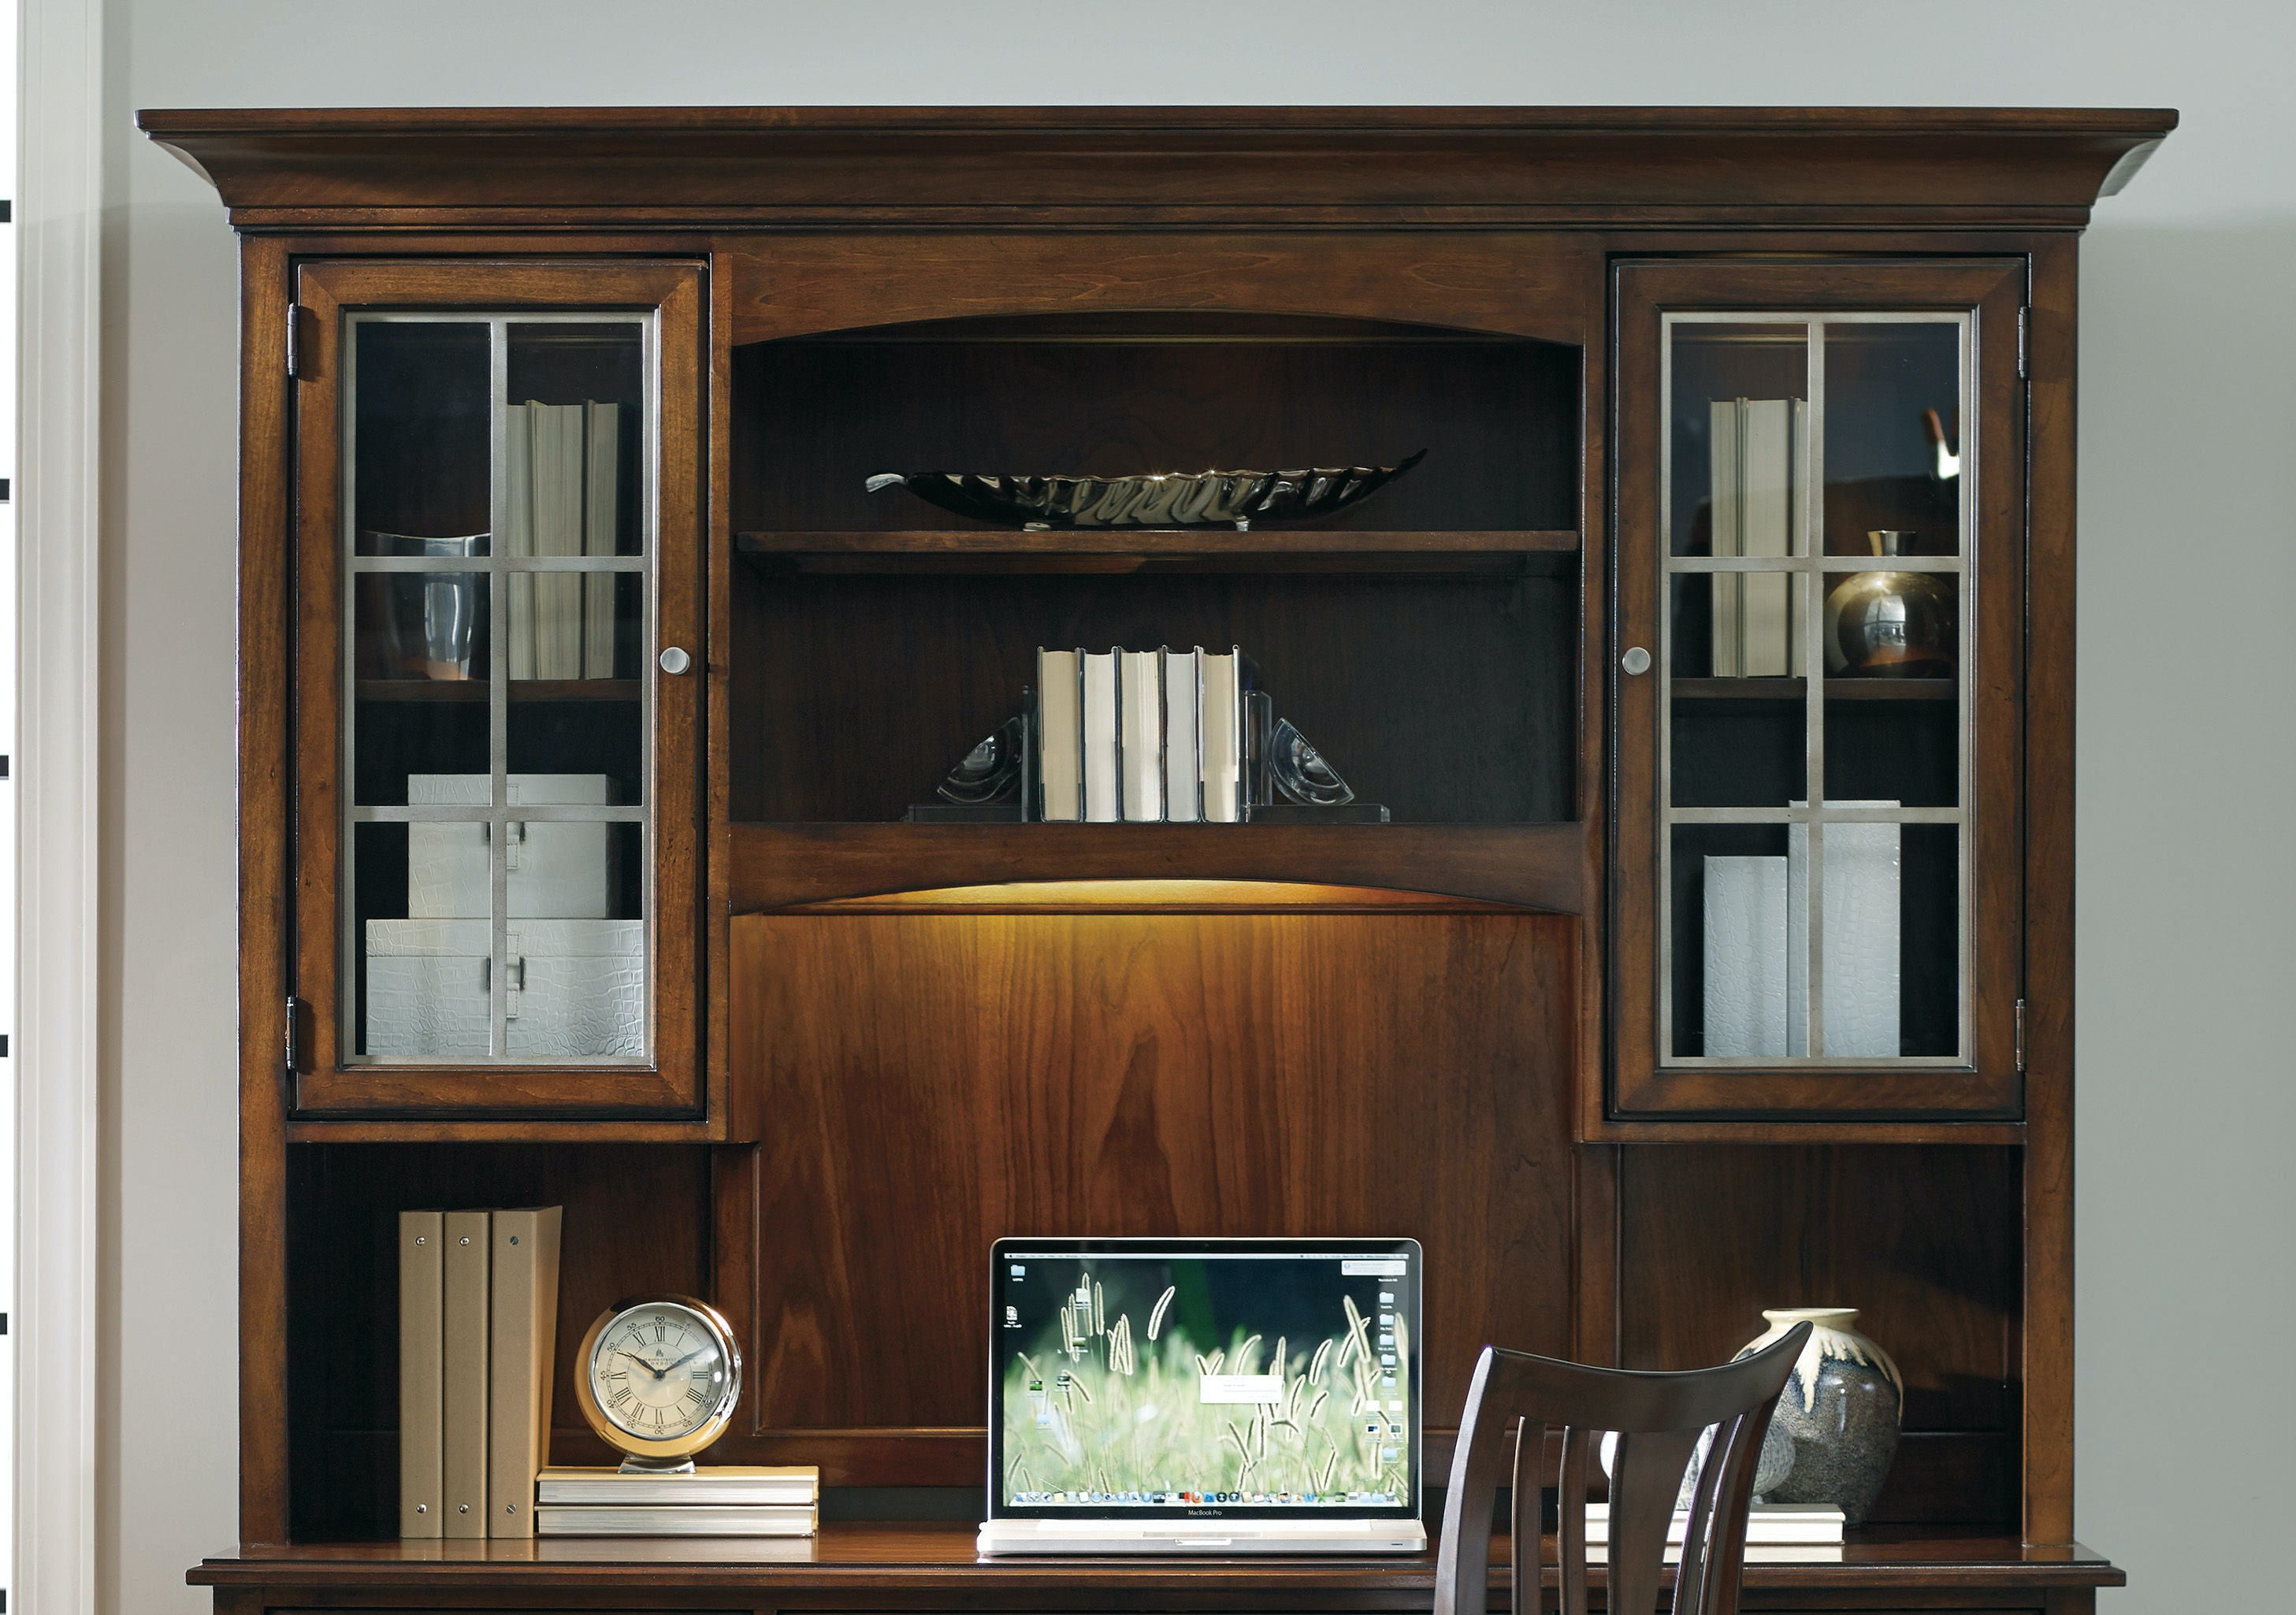 depot latitude cabin cabinets cabinet interior bathroom in stock and at up vanity refacing diamond inexpensive stand unfinished home shelves kitchen remodel tips lowes showers decorating doors